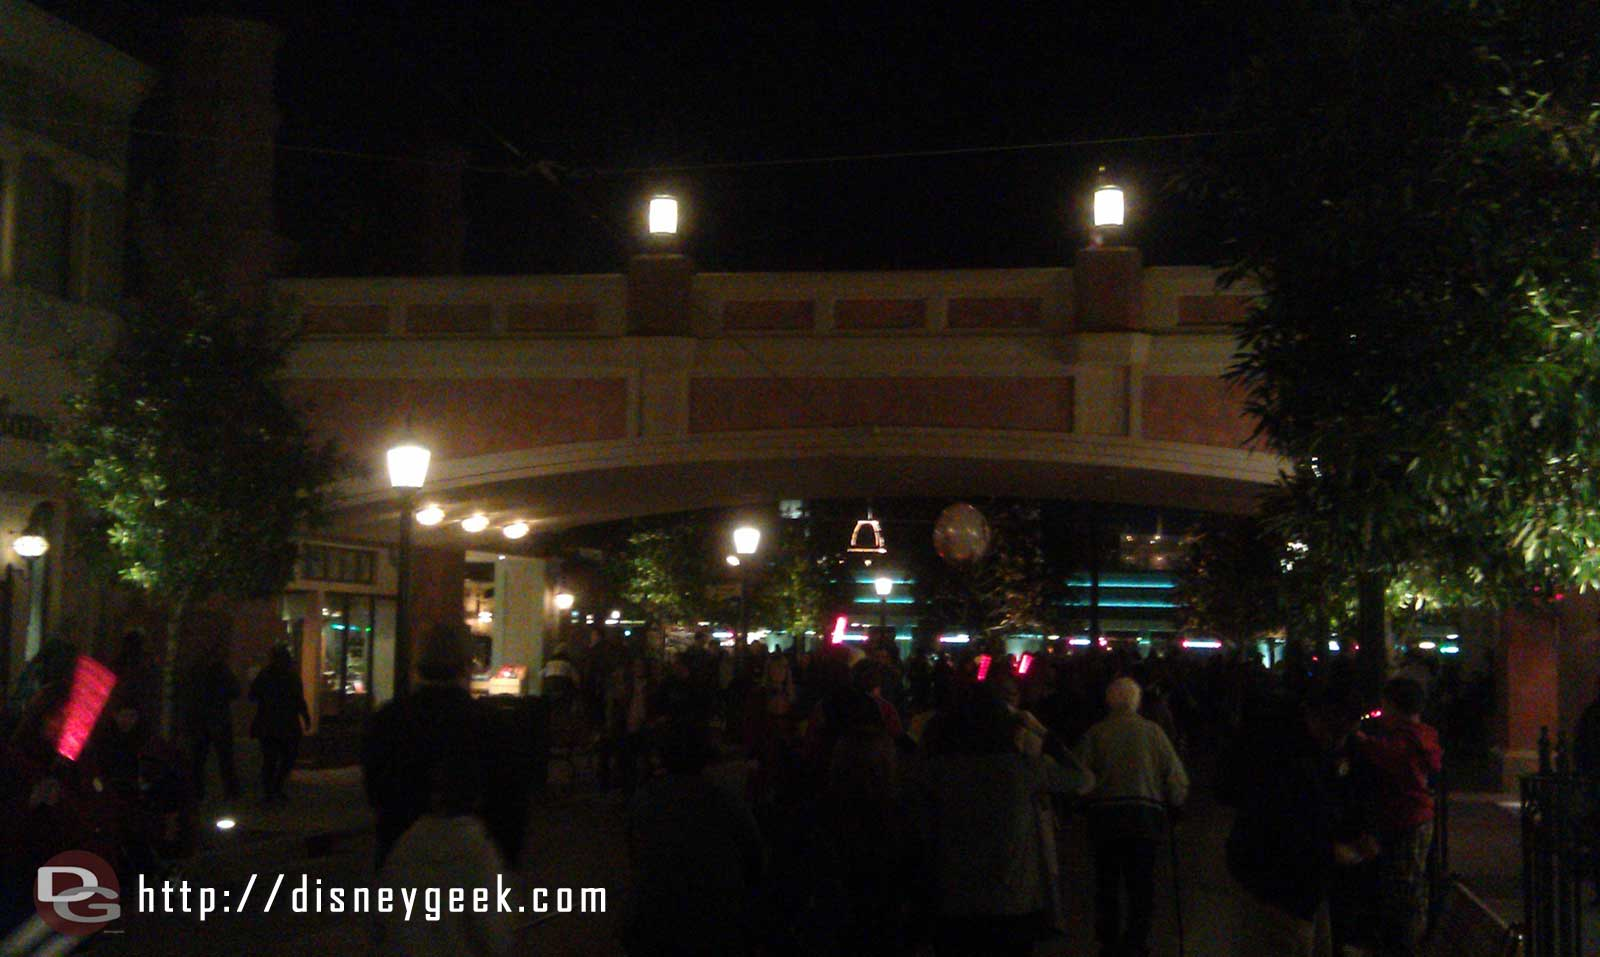 Time to head for home, one last look at the Hyperion Bridge on #BuenaVistaStreet